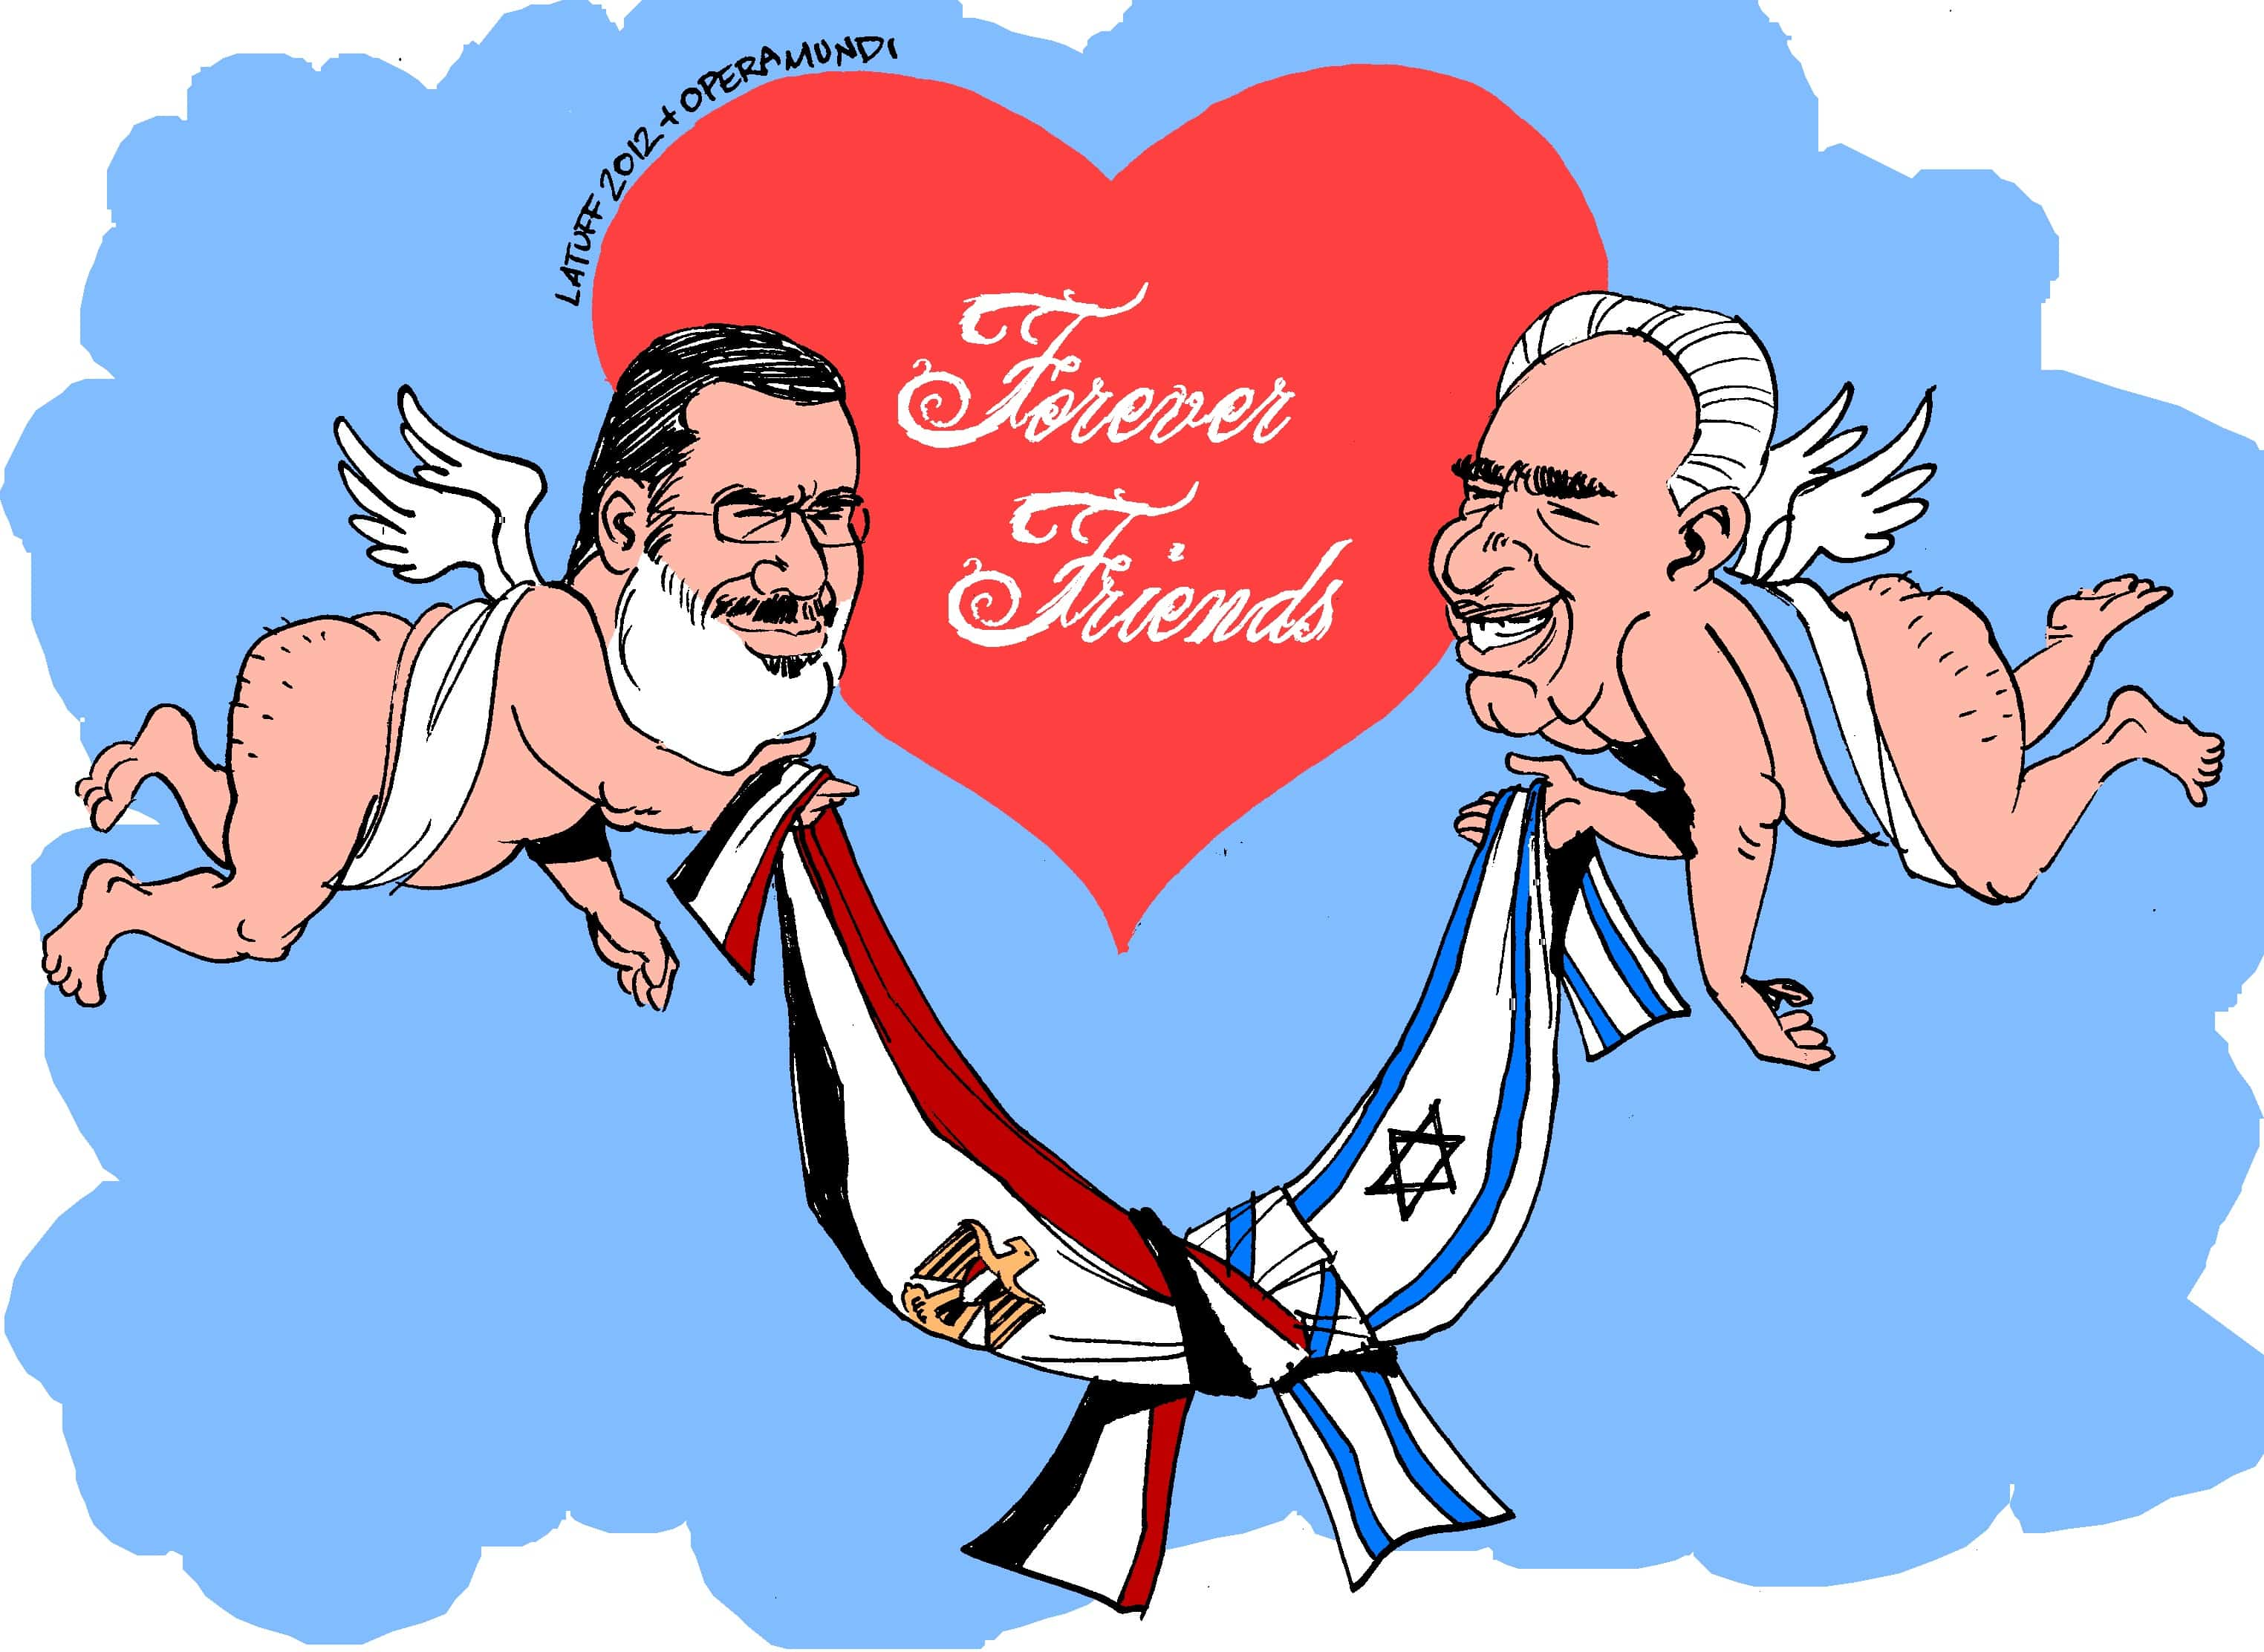 Morsi and Peres: A Love Story